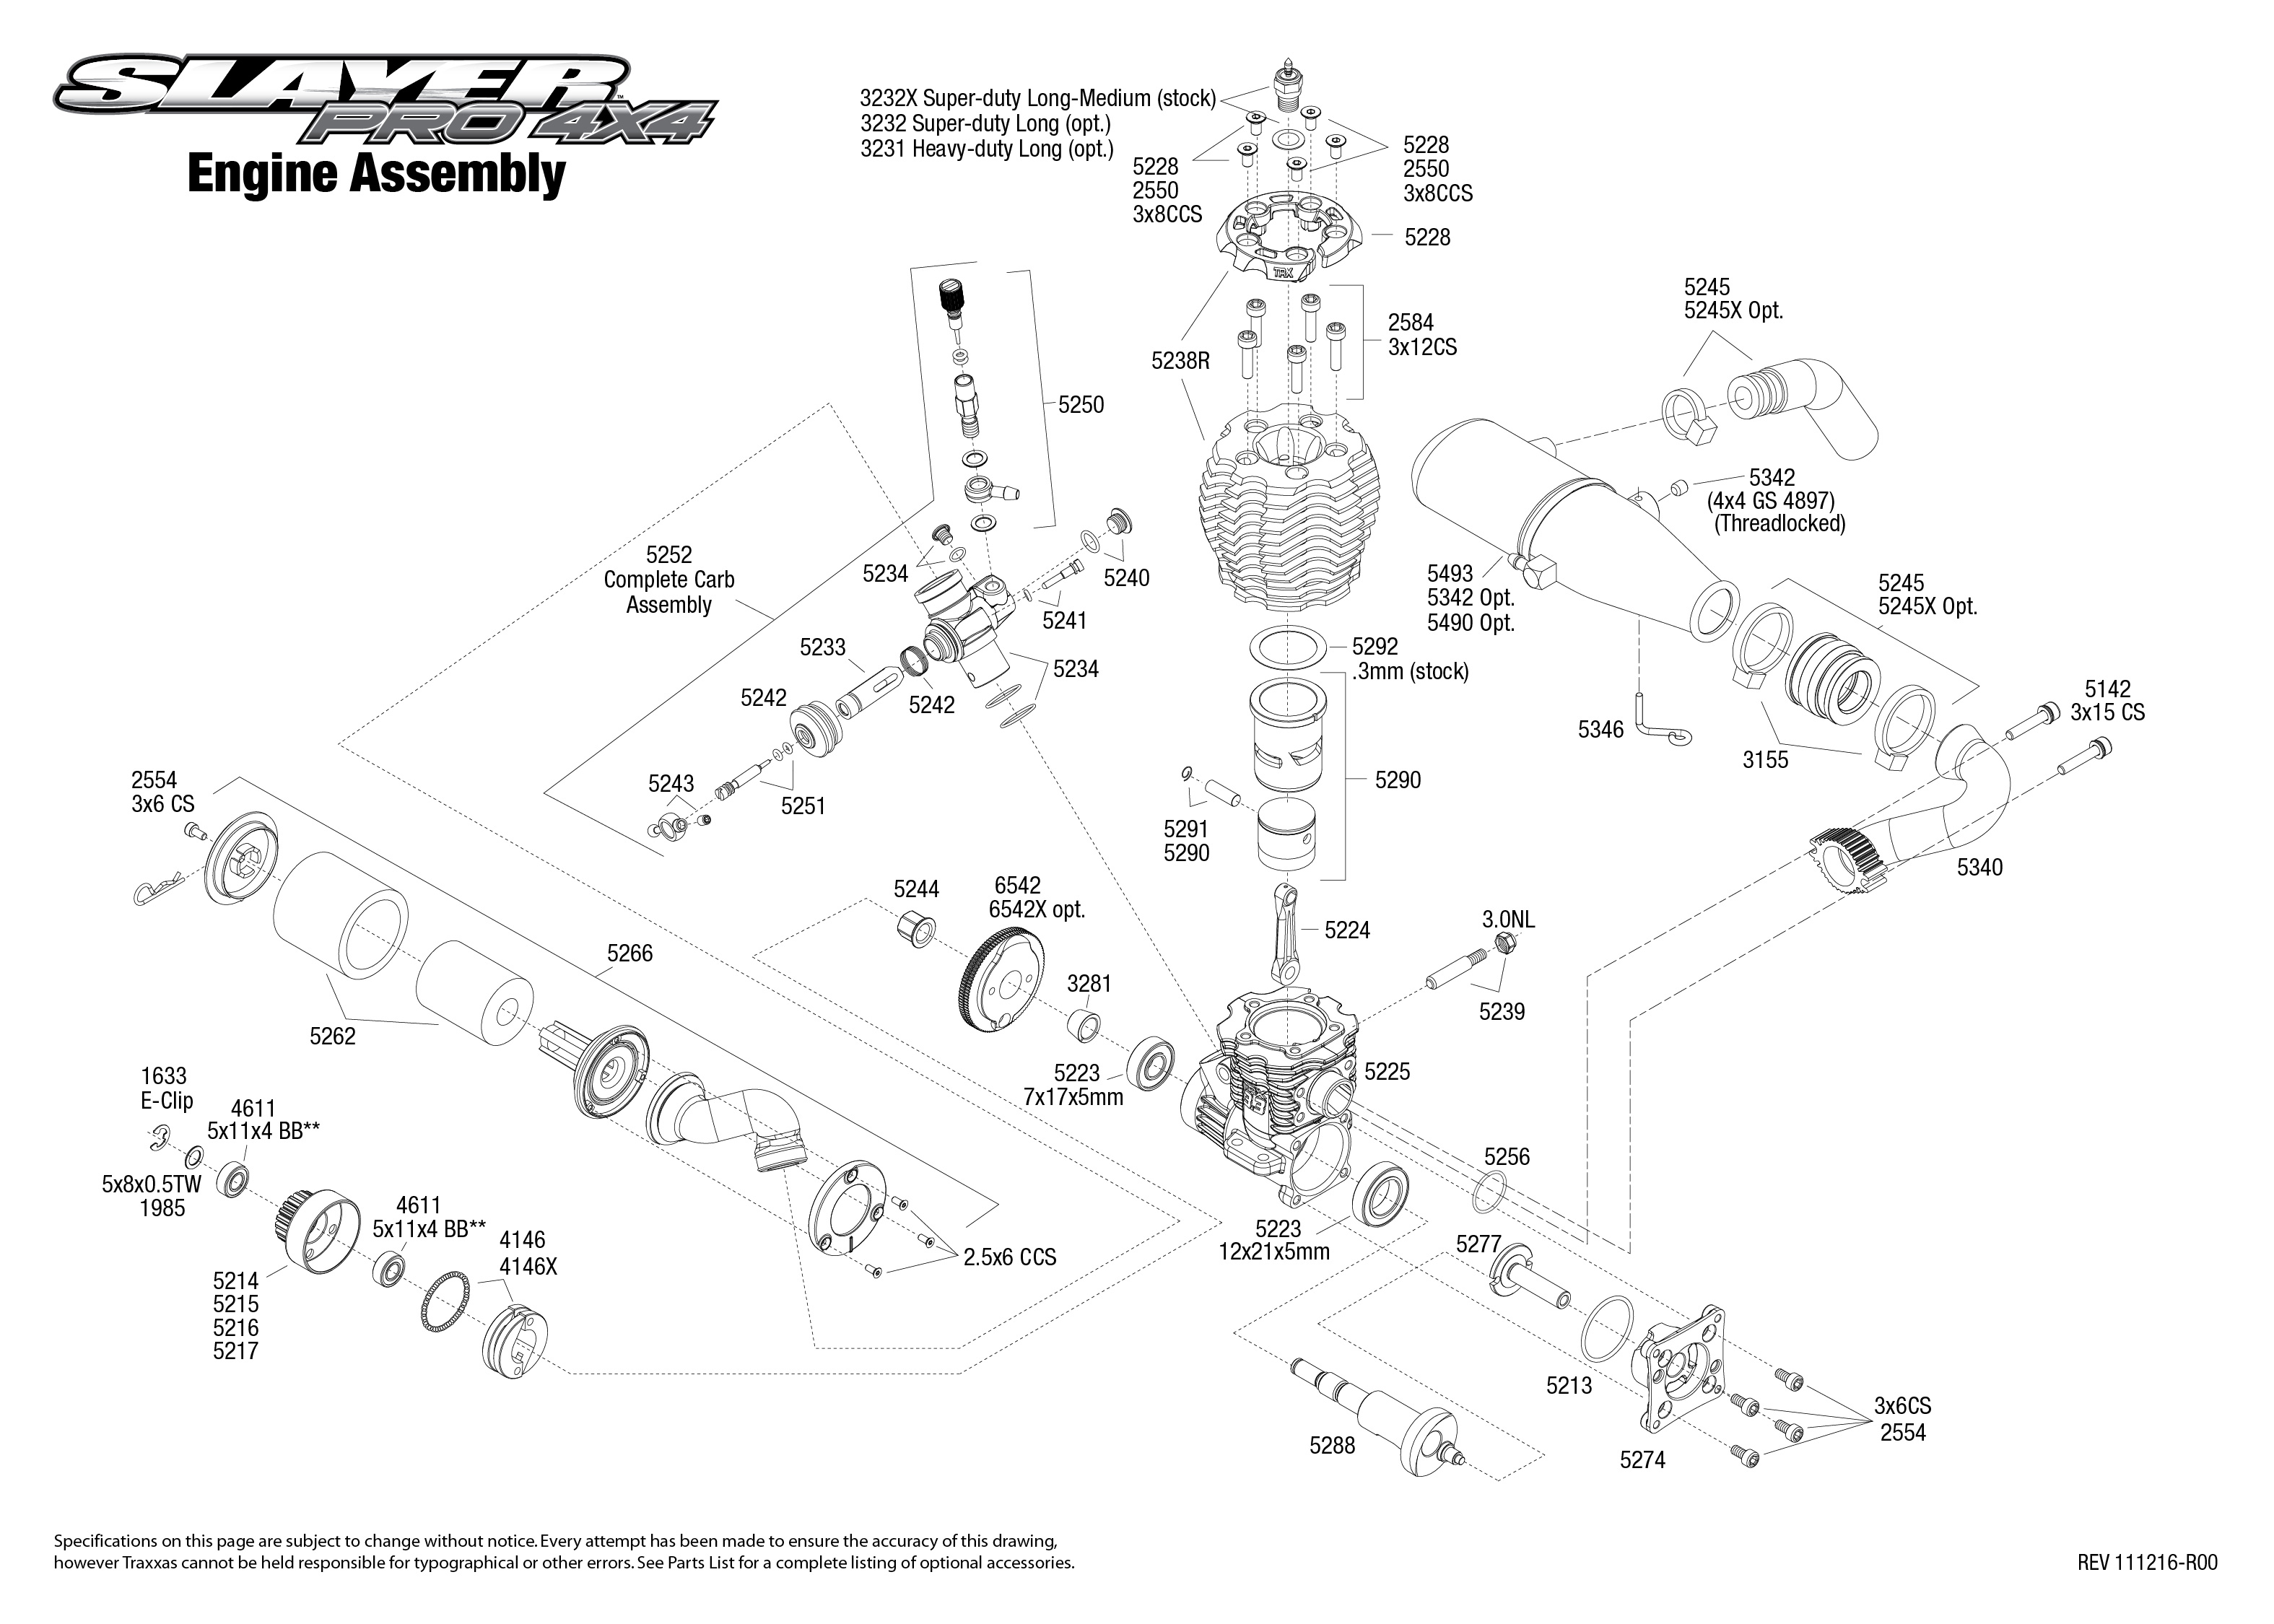 traxxas 2 5 engine diagram example electrical wiring diagram u2022 rh huntervalleyhotels co Traxxas T-Maxx 2.5 Diagram T-Maxx 2.5 Exploded-View